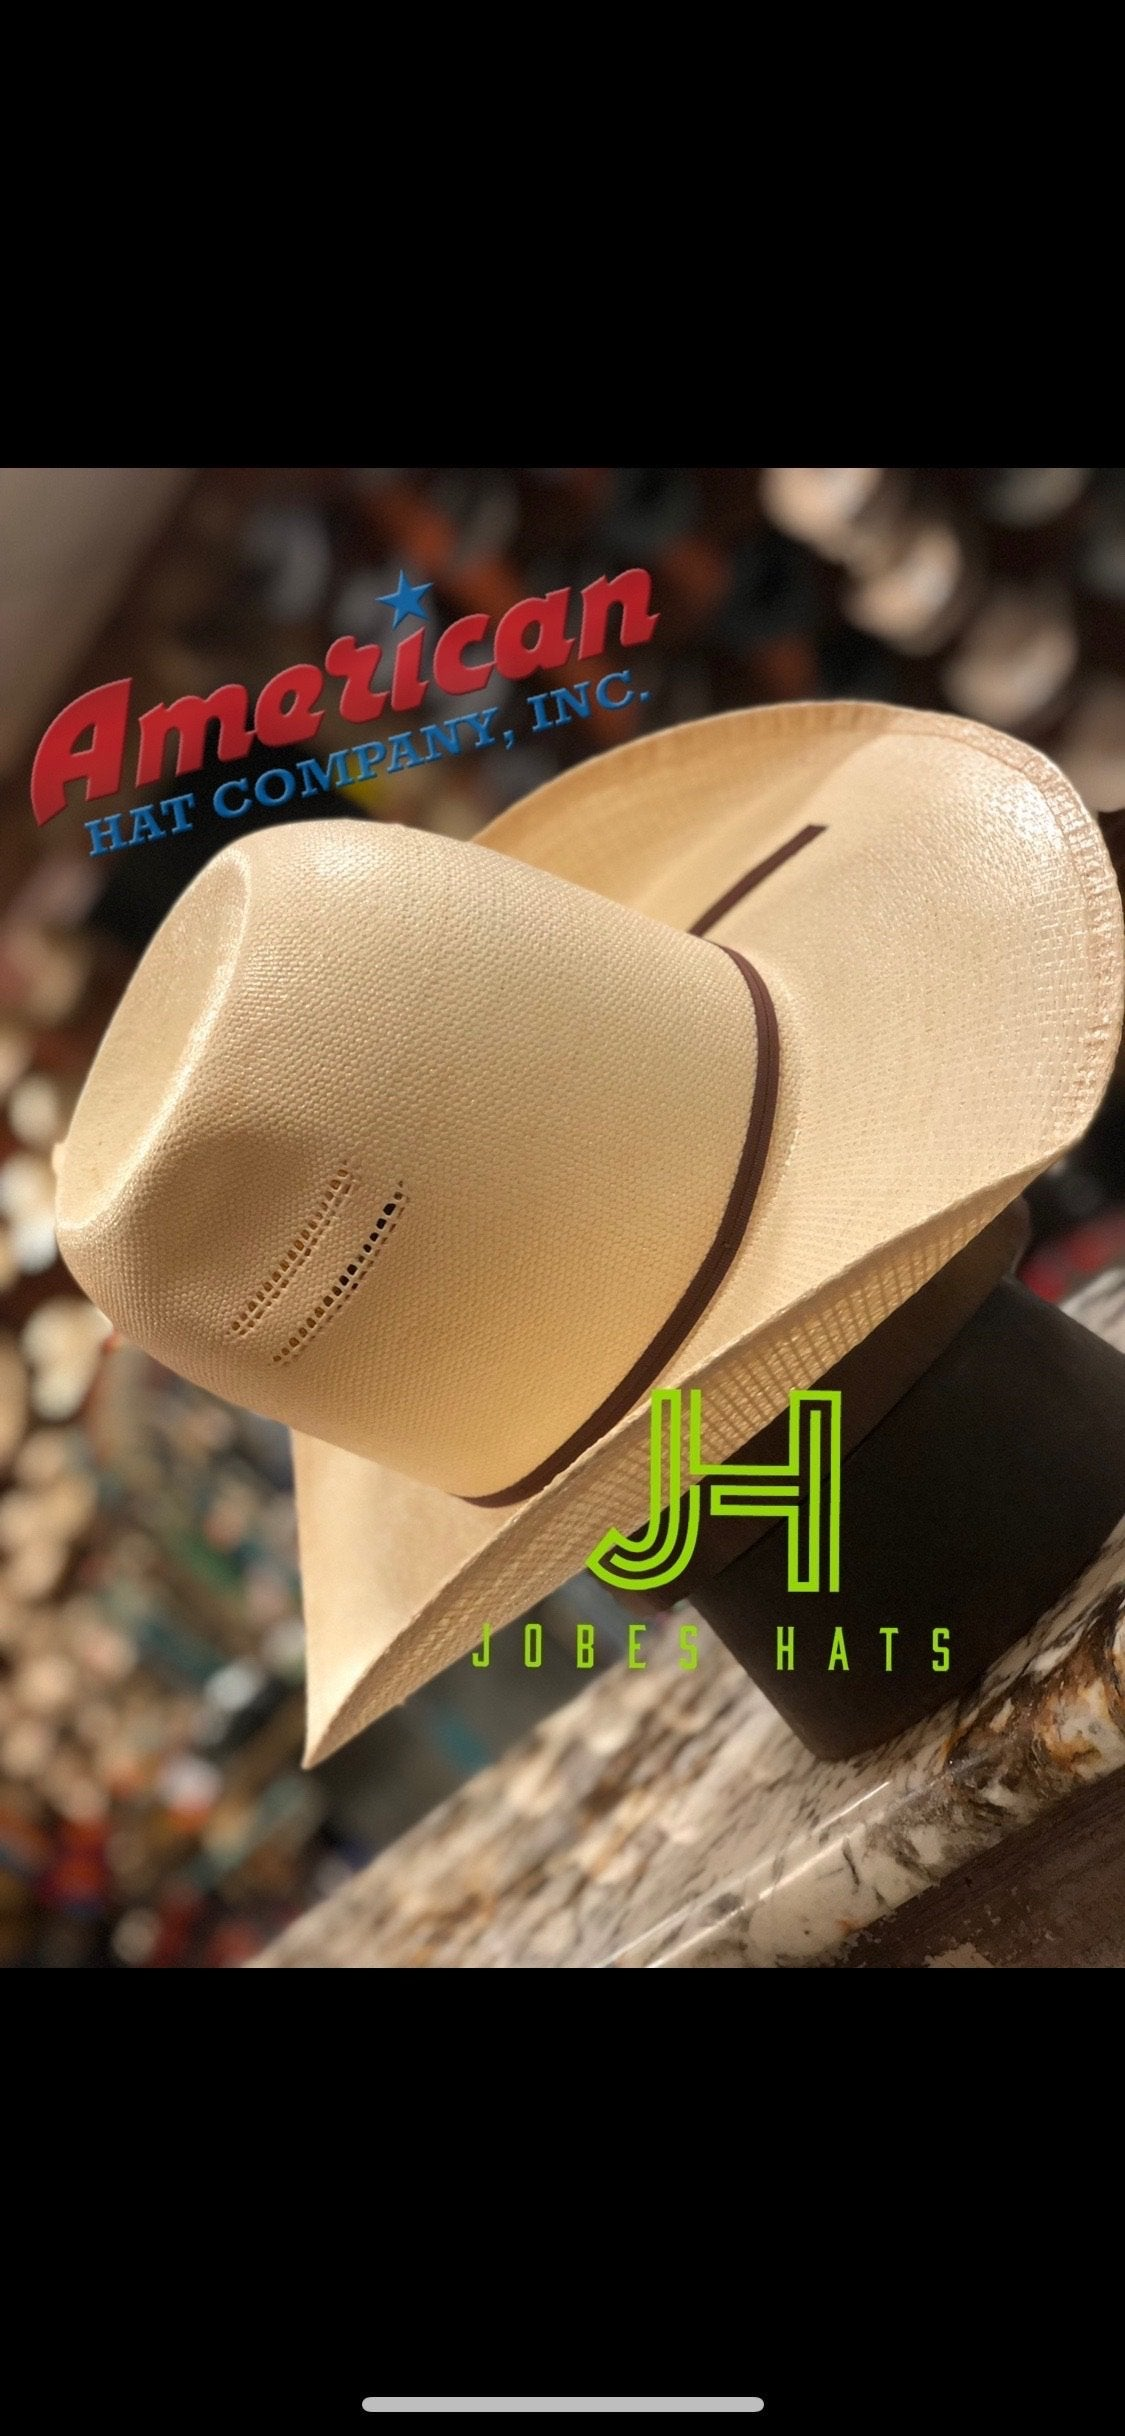 American Hat 601 Bangora Tall 7 Crown And 4 Brim Discontinued Jobes Hats Are you searching for cowboy hat png images or vector? american hat 601 bangora tall 7 crown and 4 brim discontinued